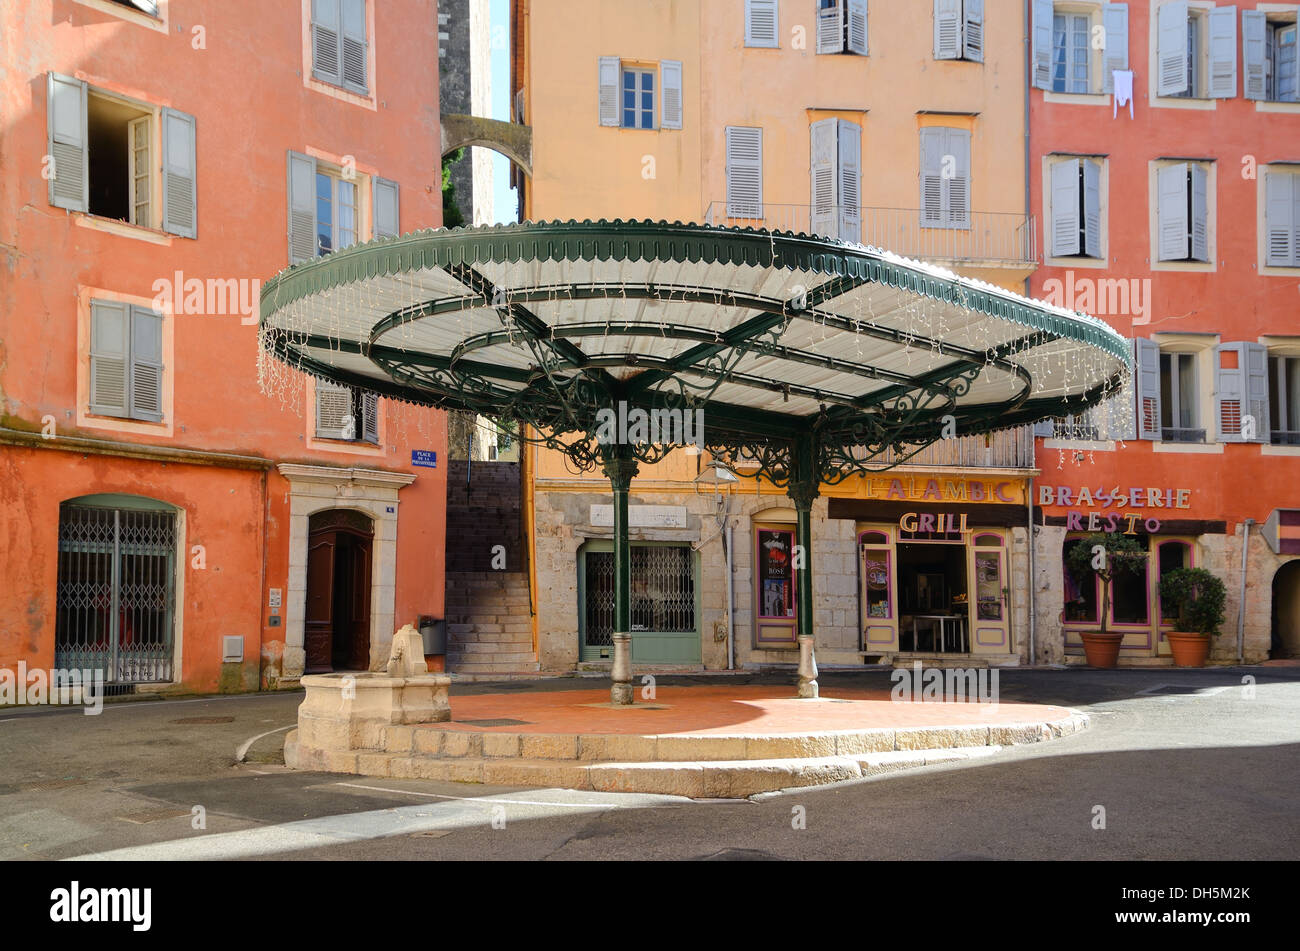 kiosk pergola sunshade or canopy in place des artistes or place de la stock photo royalty free. Black Bedroom Furniture Sets. Home Design Ideas